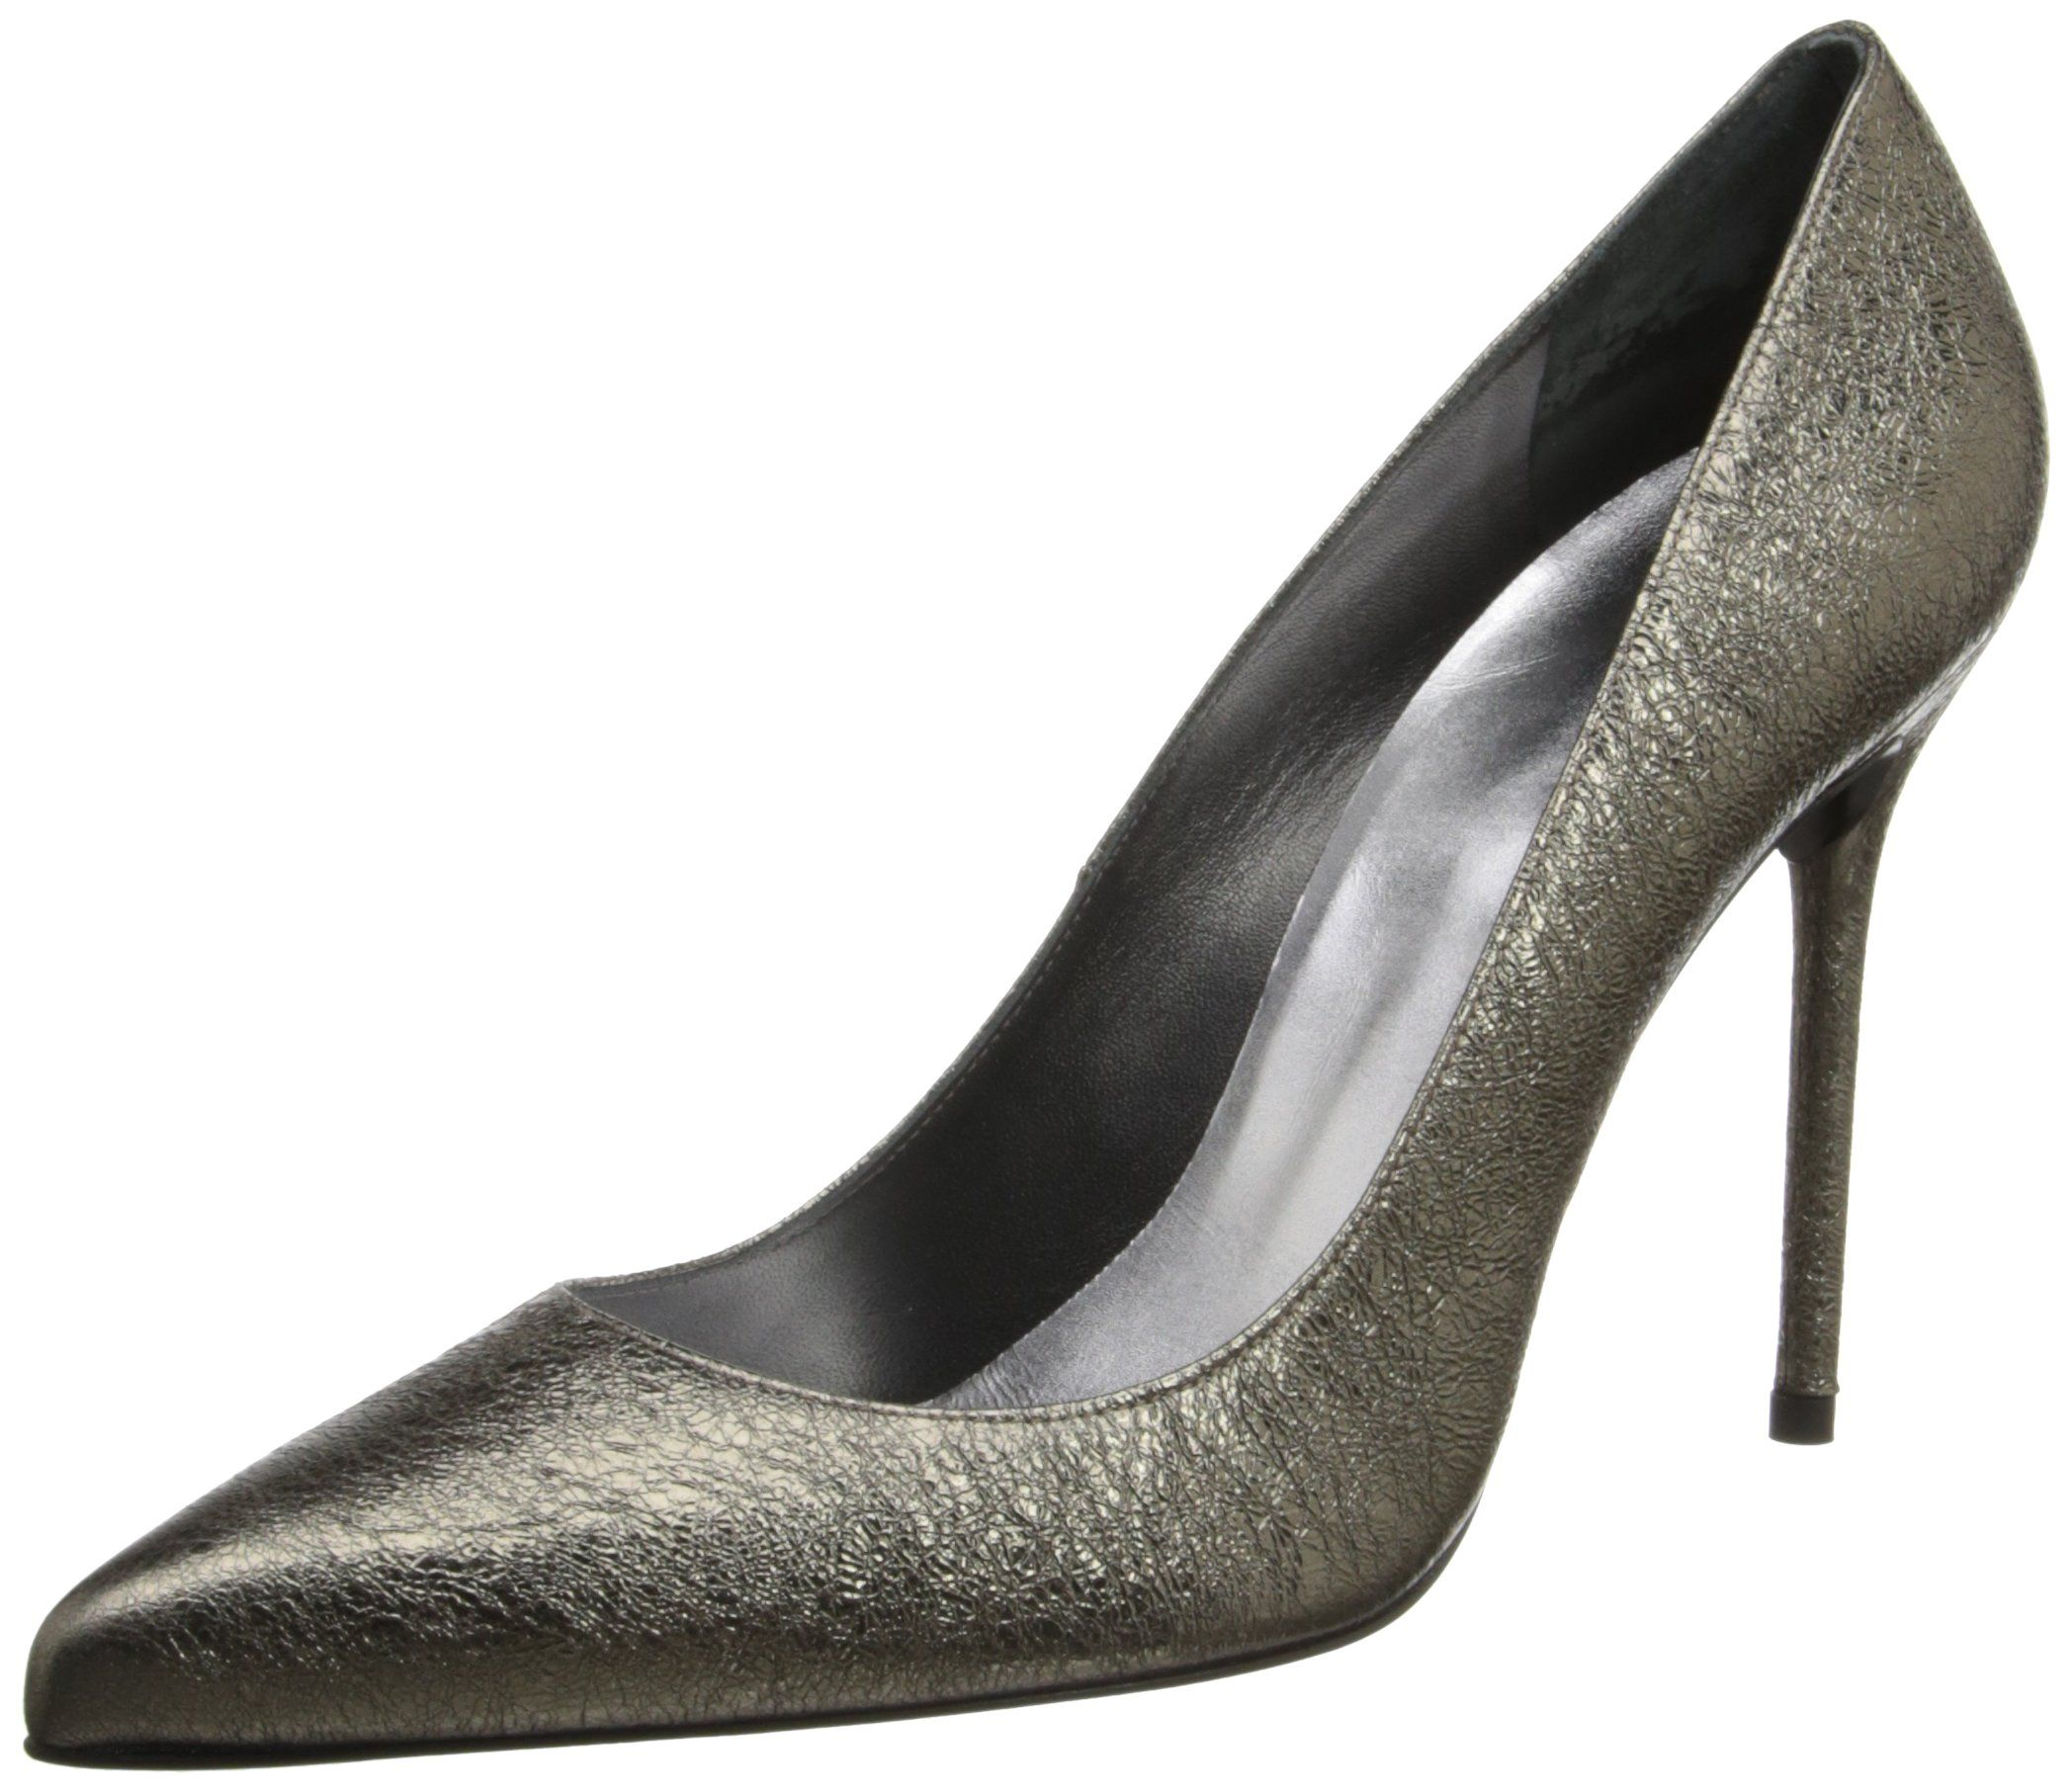 d95fe6b4dfa Stuart Weitzman Women s Nouveau Dress M US. Classic pump with pointed toe  and lightly padded foot bed.